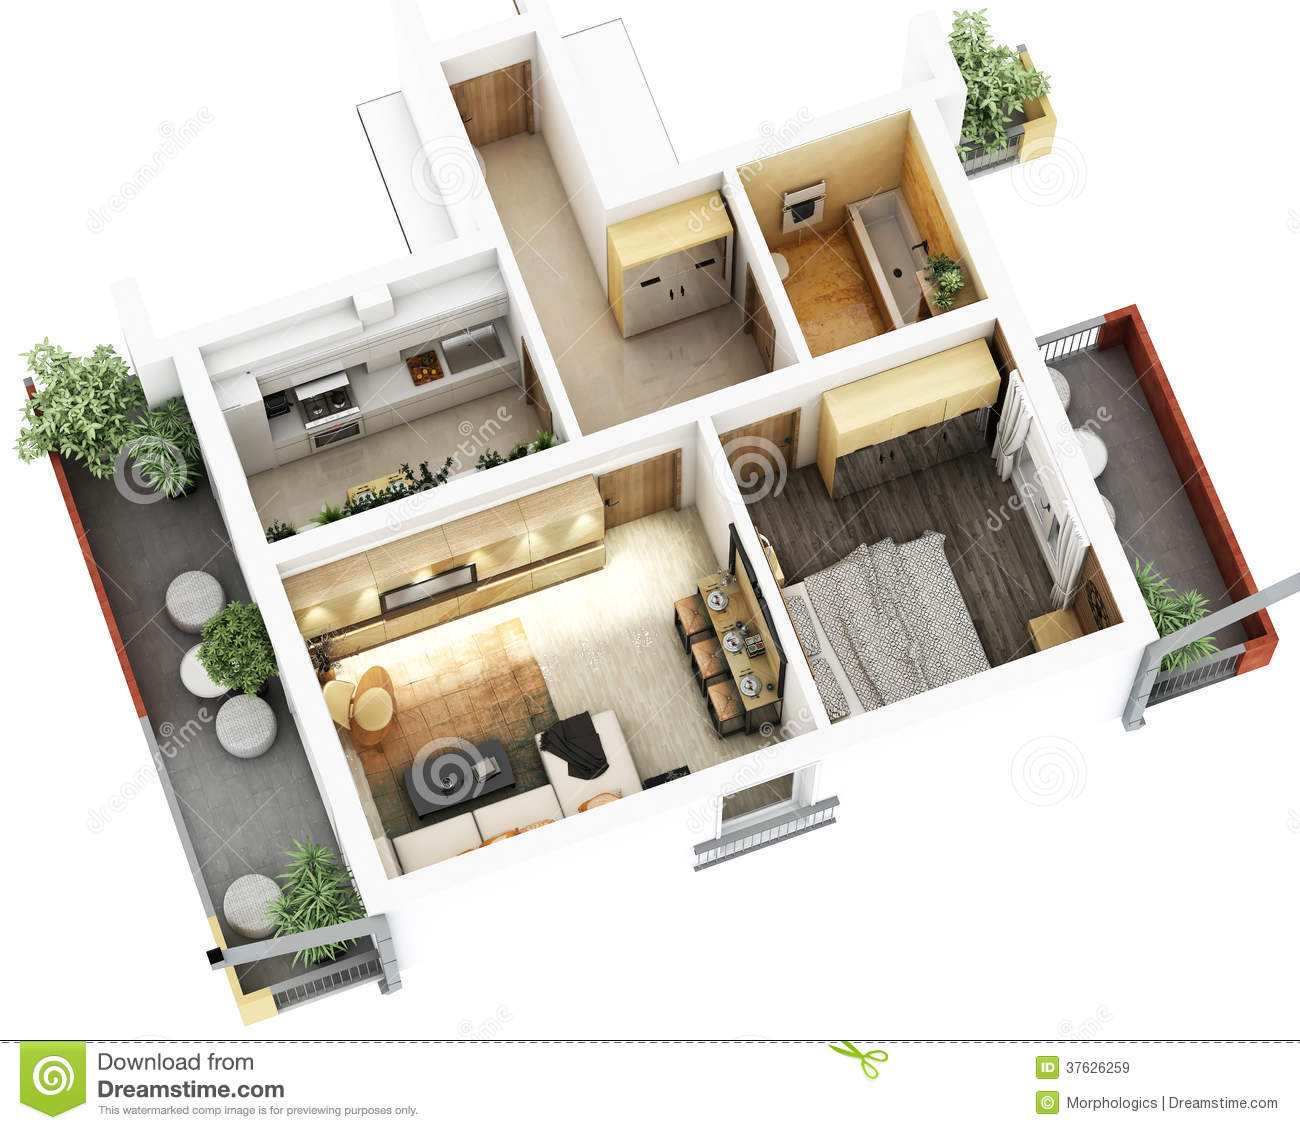 Plan de l 39 tage 3d illustration stock illustration du for Planner casa 3d